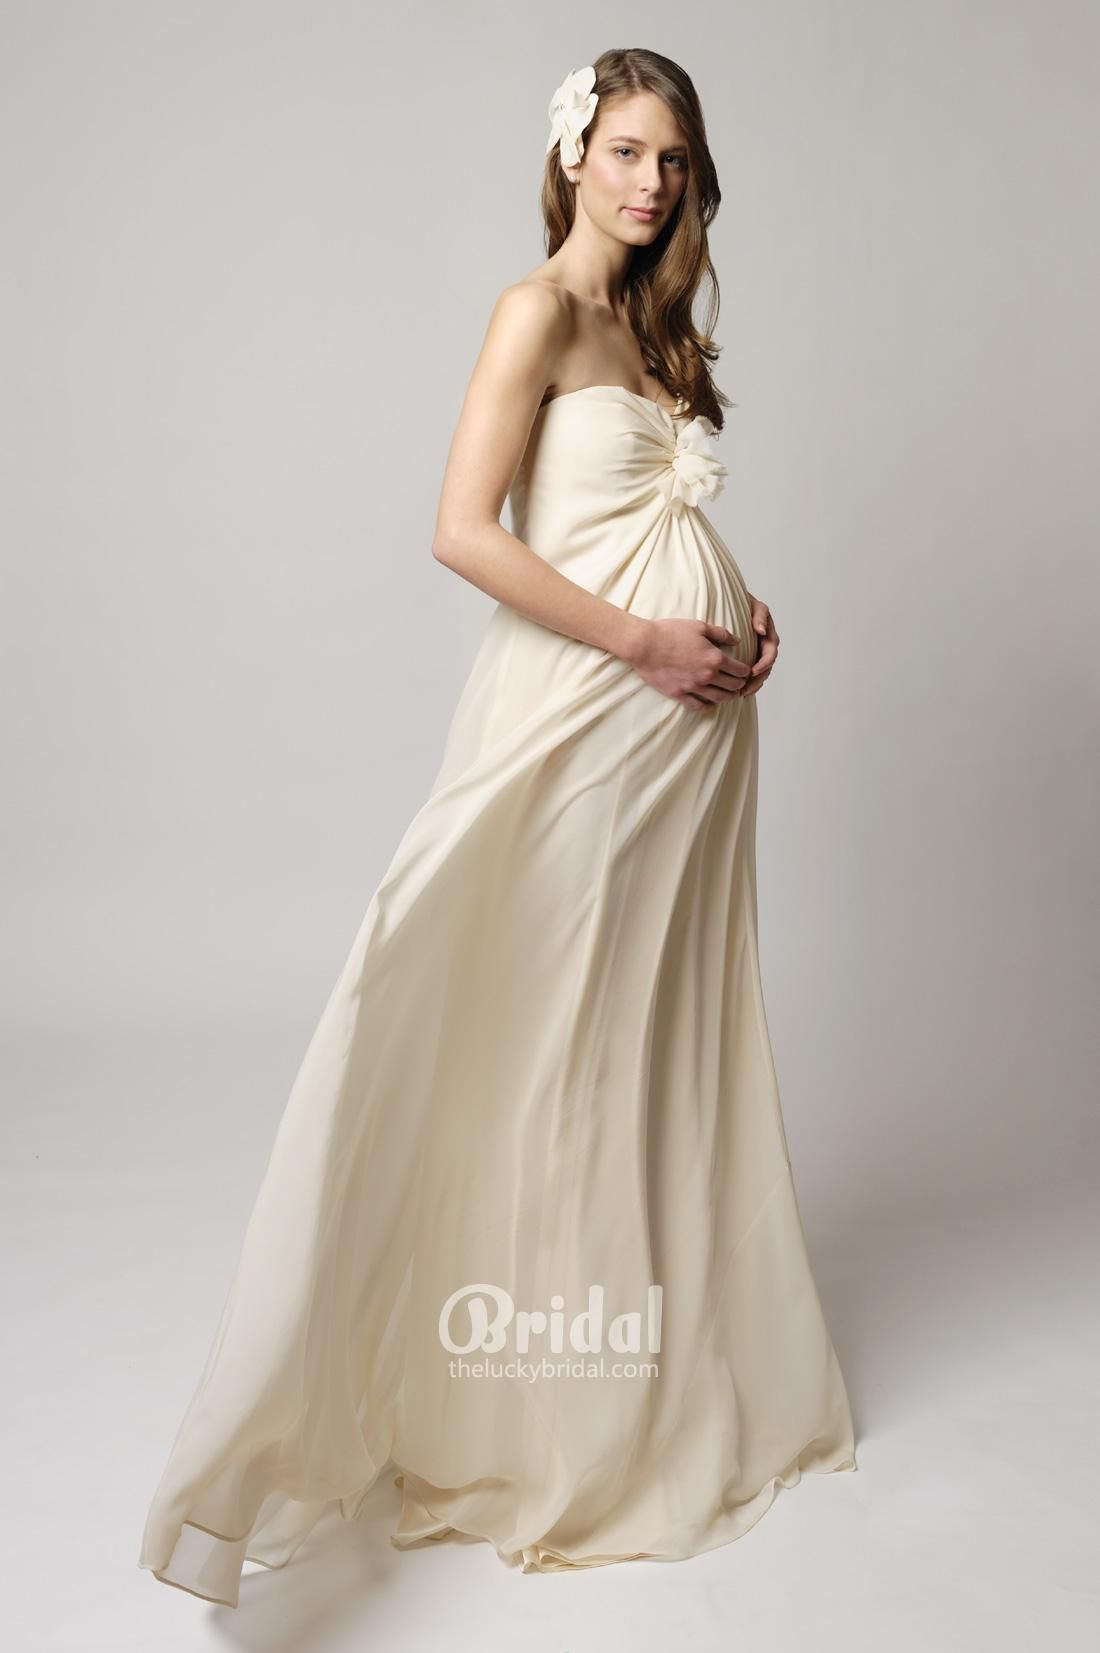 Princess strapless chiffon maternity wedding dress with gathers princess strapless chiffon maternity wedding dress with gathers center front ombrellifo Gallery